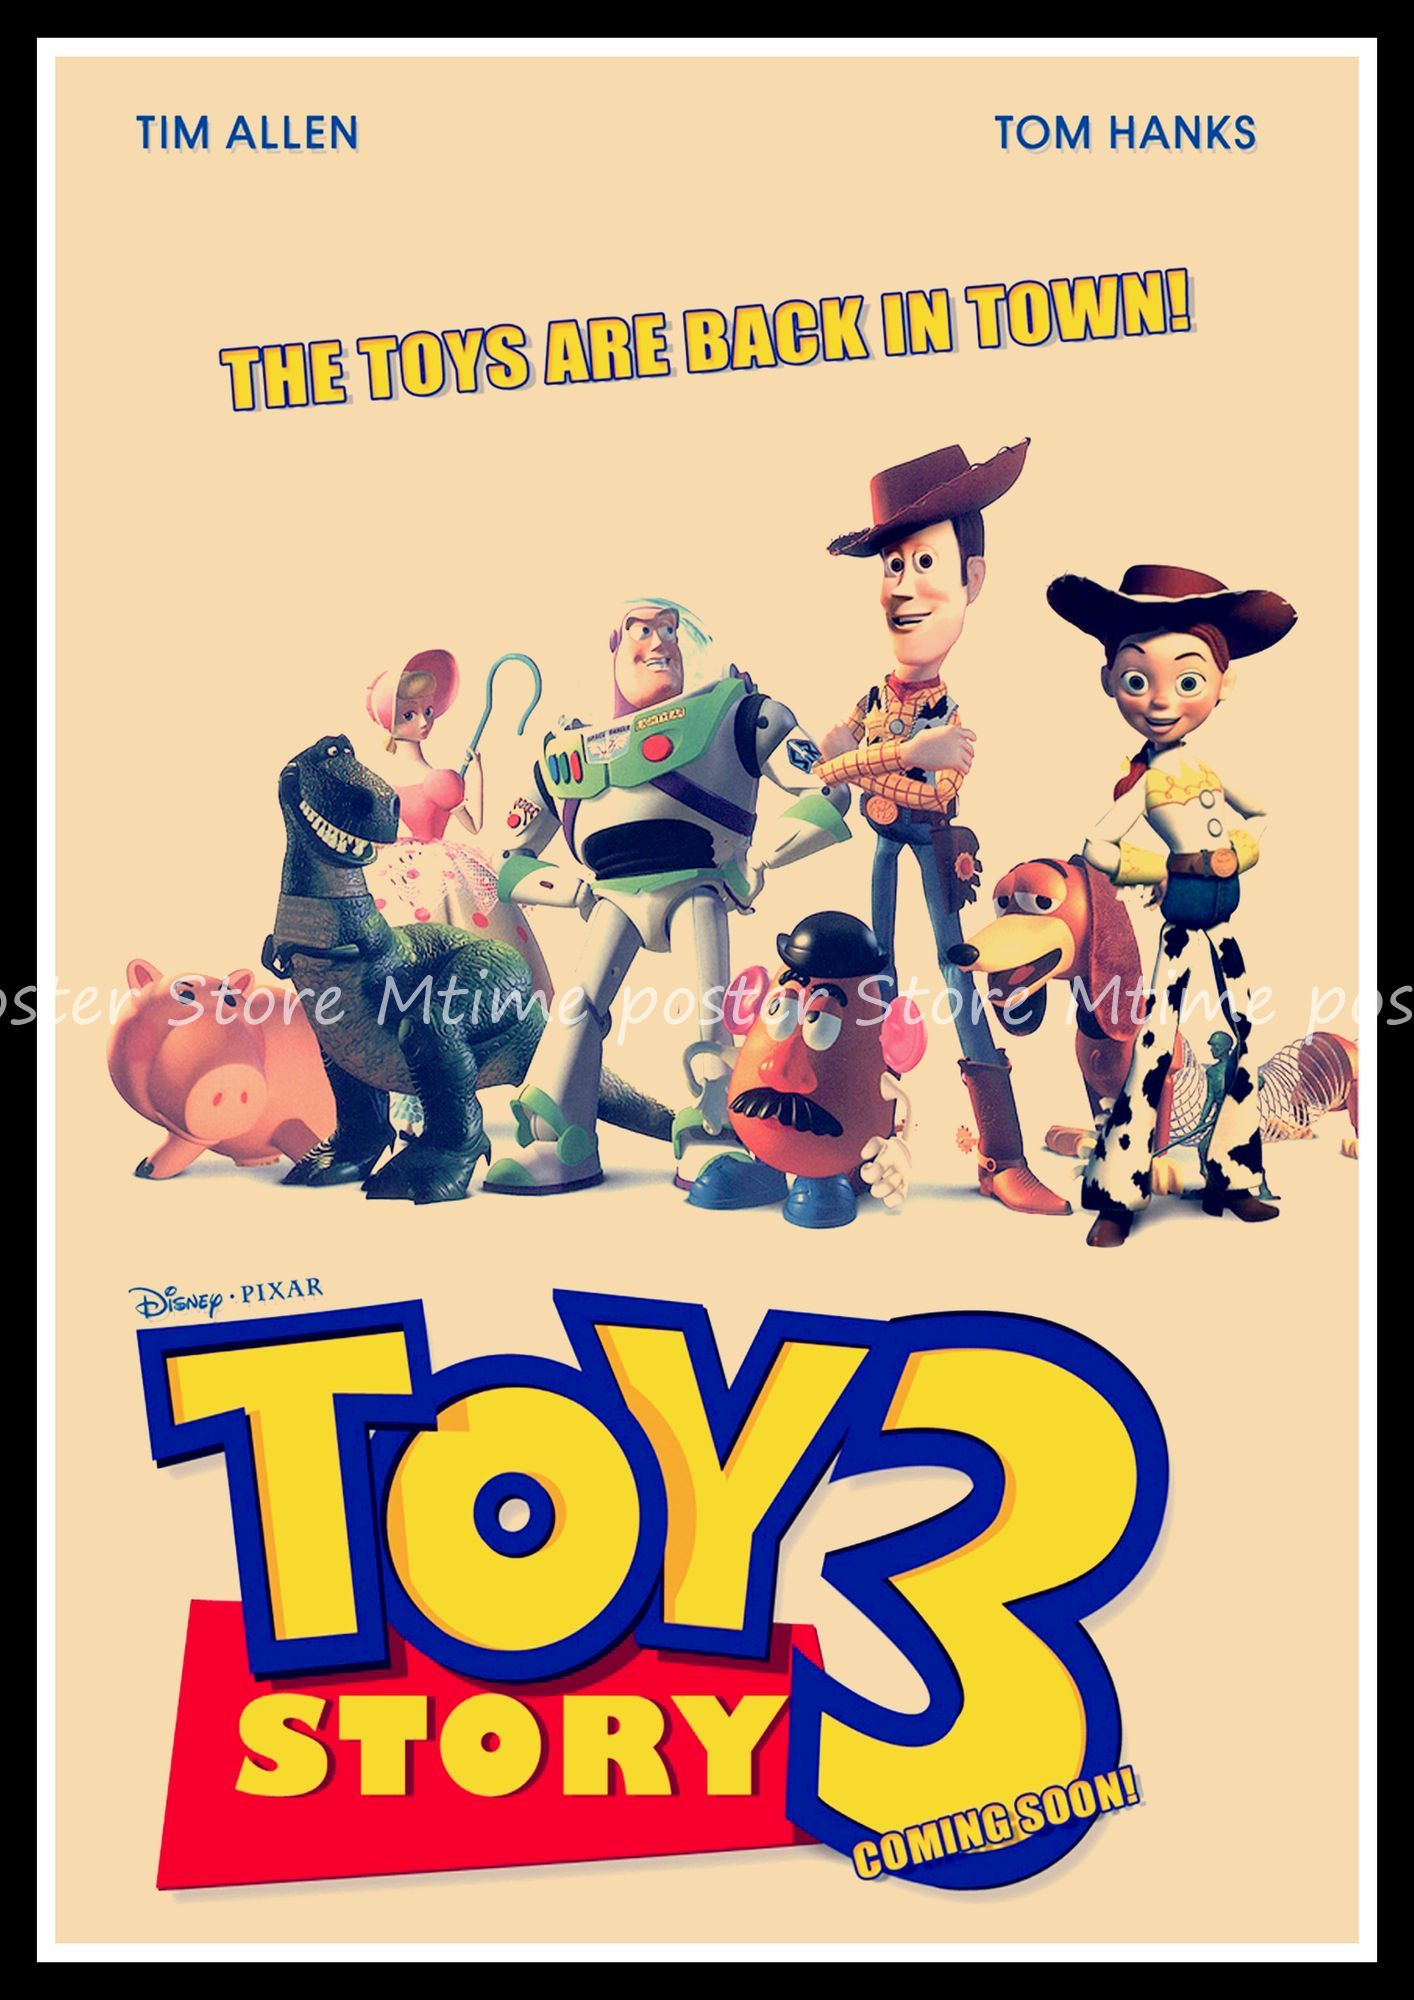 Toy Story Toys Vintage Toy Story 3 Poster Classic Old Movie Vintage Poster Retro